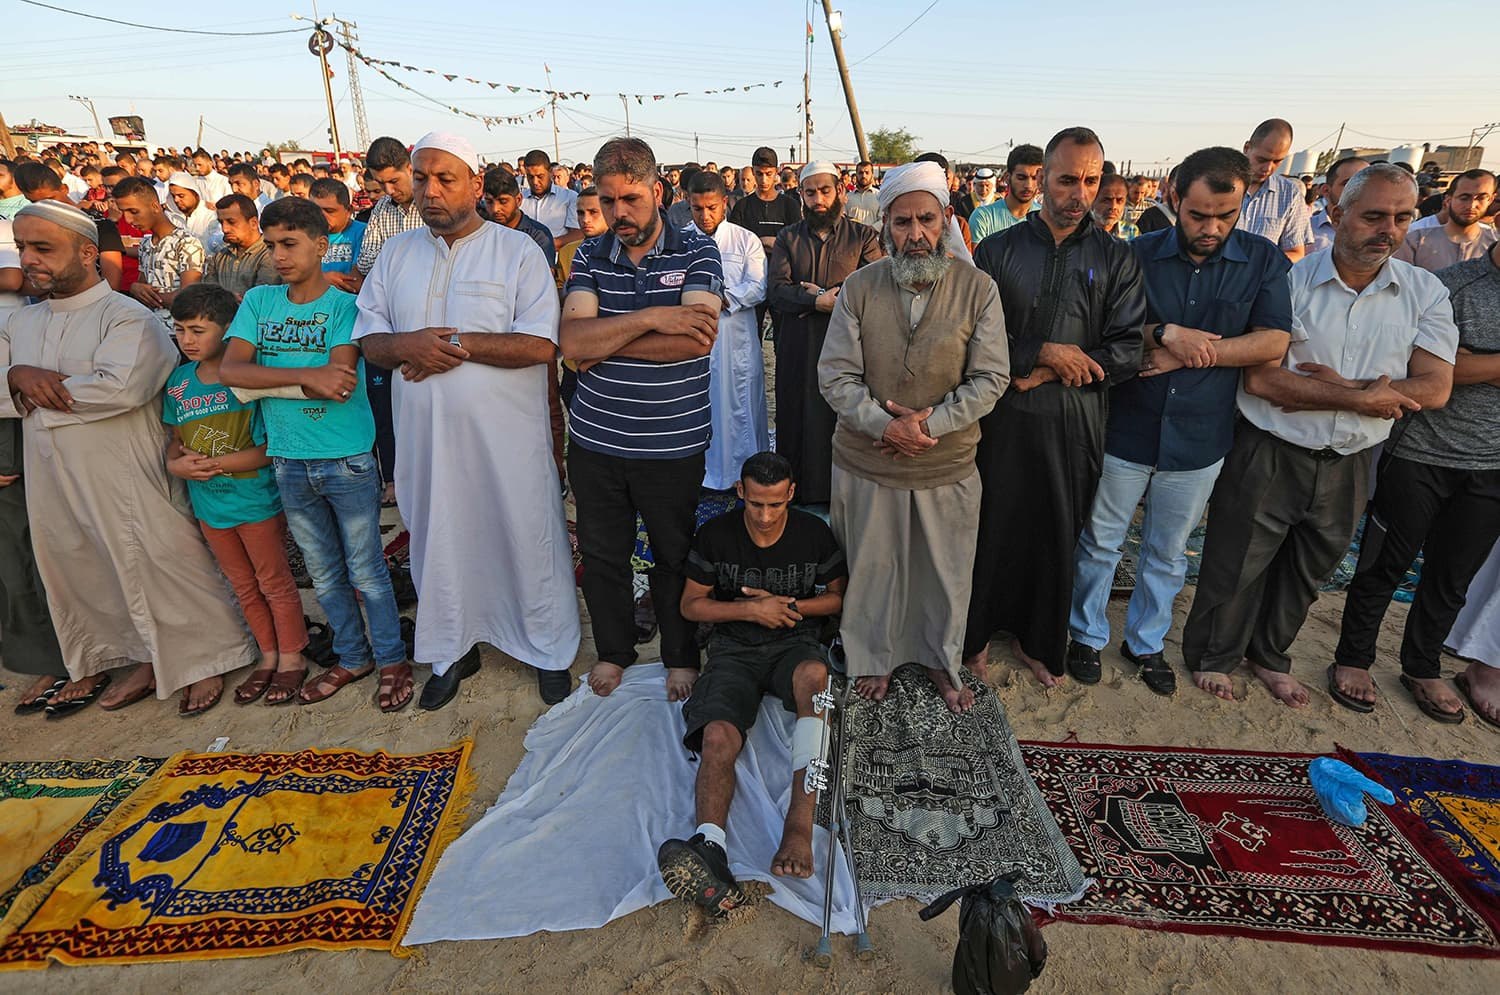 """A Palestinian faithful injured during the """"Great March of Return"""" attend morning prayers during the first day of the celebrations of Eidul Fitr, at the Israel-Gaza border east of Gaza city. — AFP"""